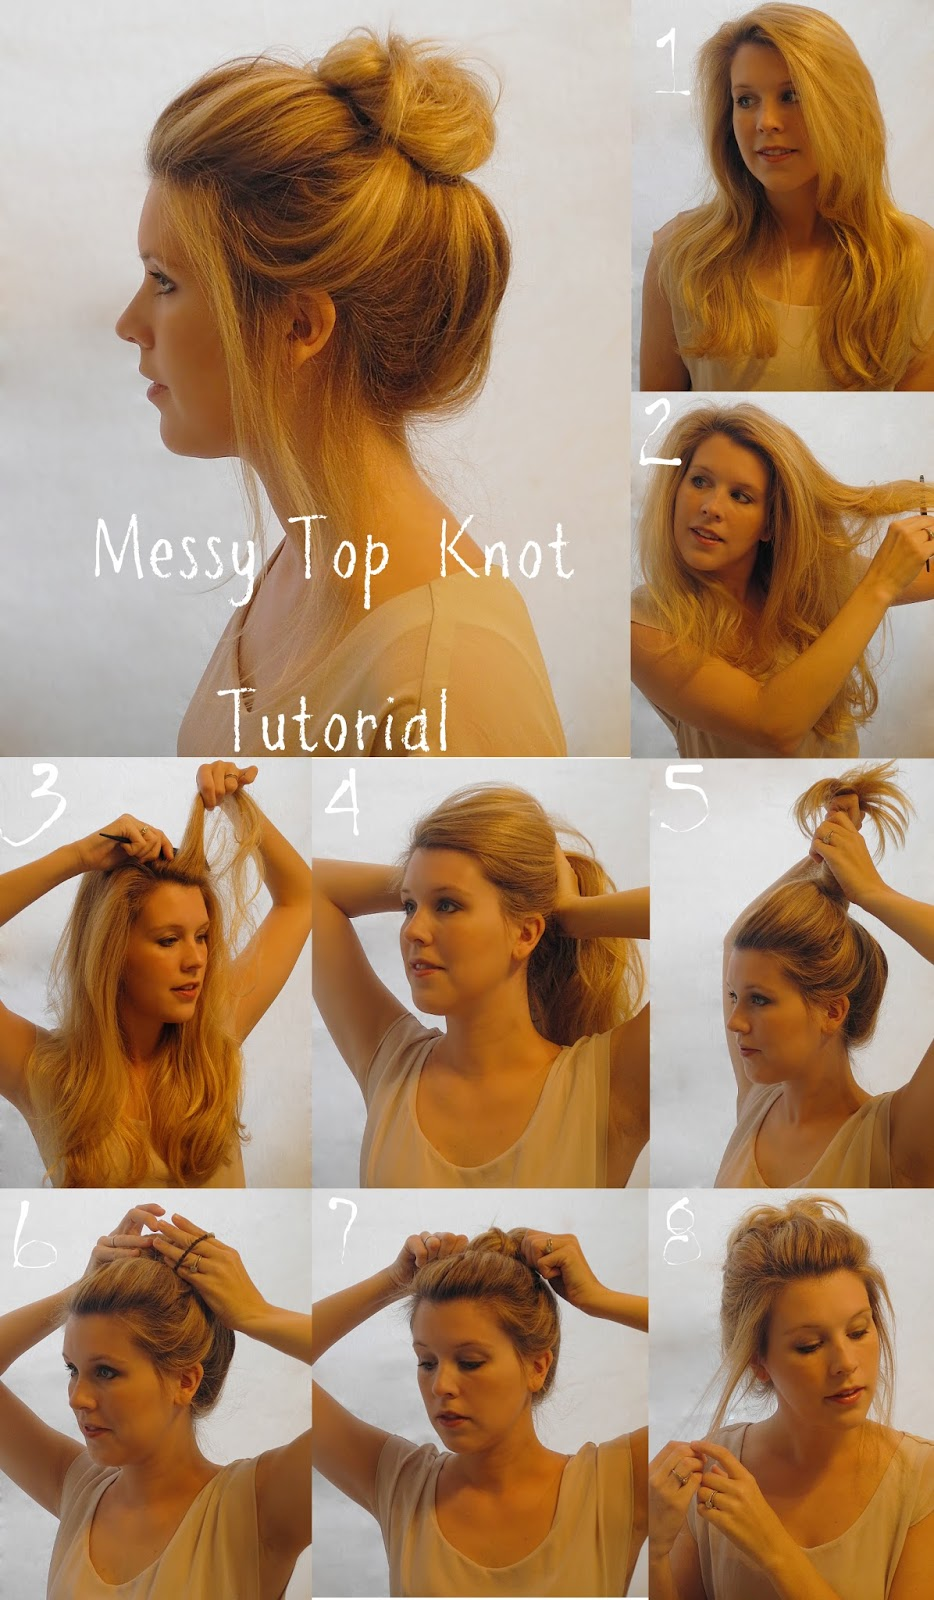 Miraculous Top 25 Messy Hair Bun Tutorials Perfect For Those Lazy Mornings Hairstyle Inspiration Daily Dogsangcom